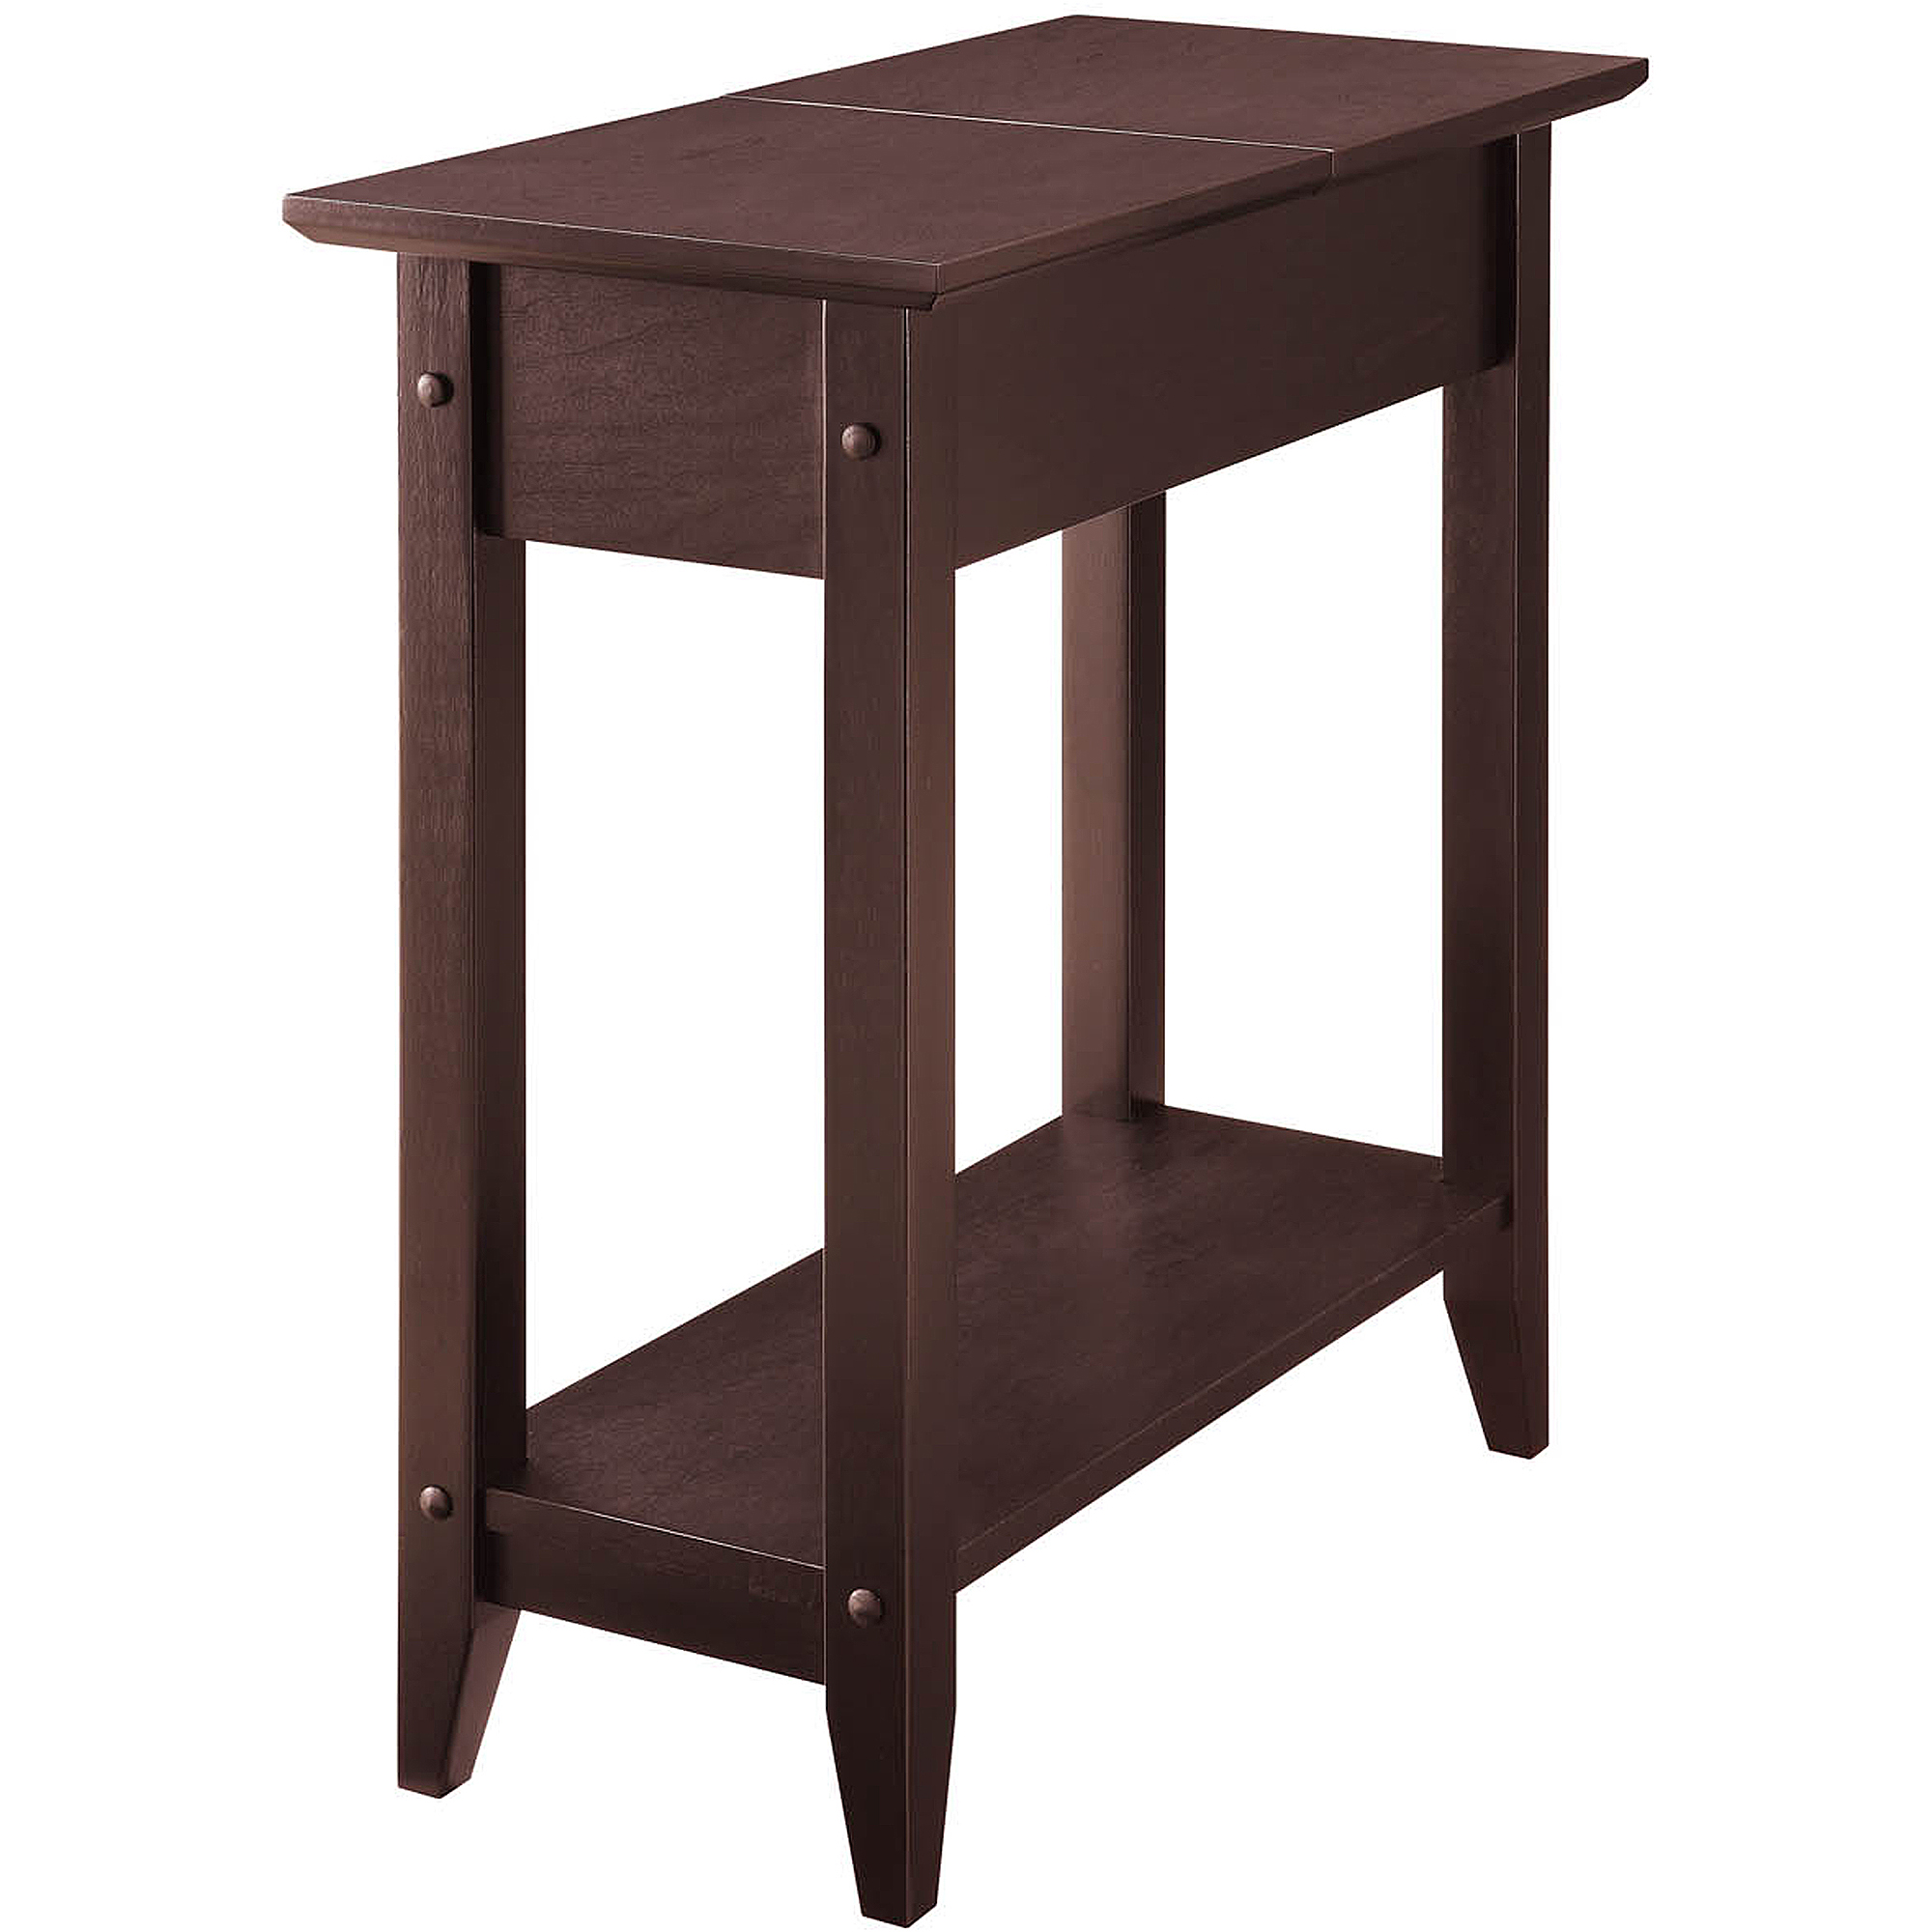 american heritage flip top tall side table espresso narrow end magnolia farms breakfast broyhill catalog brookstone cocktail master floor lamp with reading light modern children